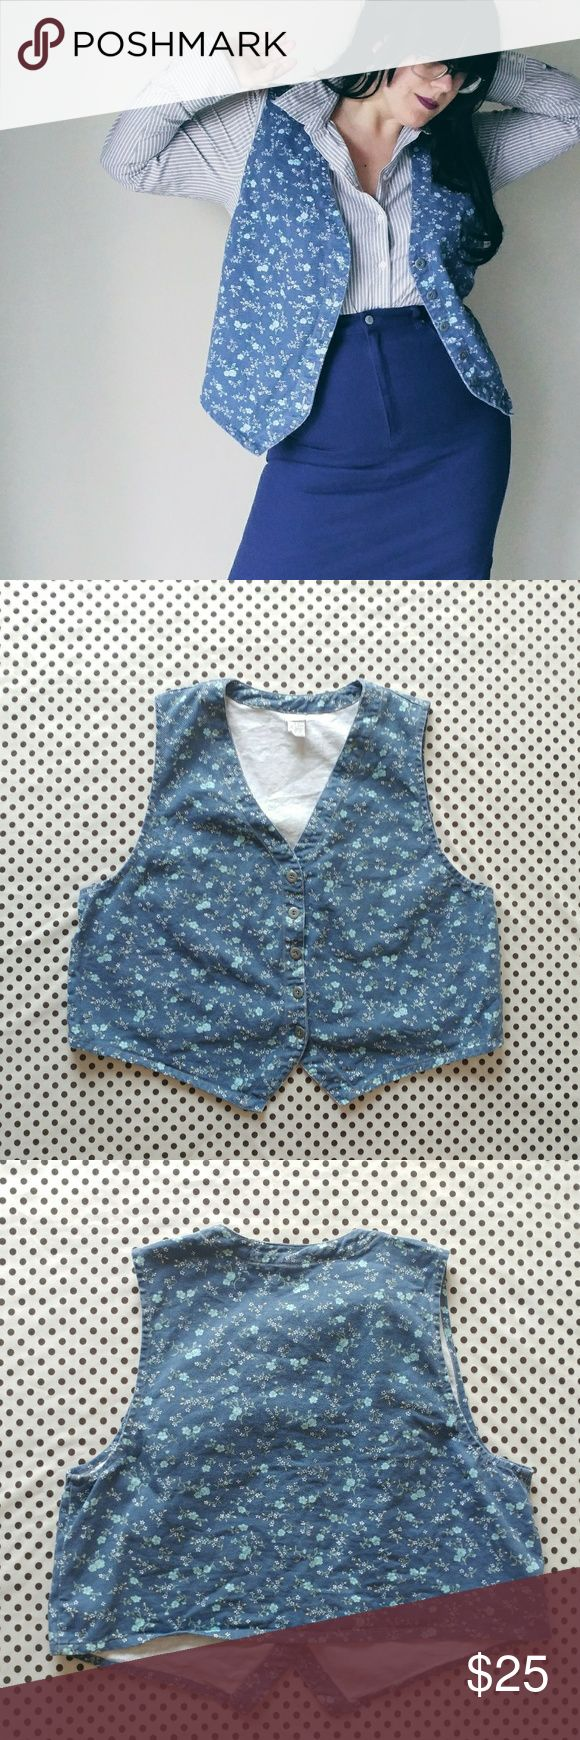 Cherokee Floral Blue Jean Vest-  Size 18/20 Cherokee Floral Blue Jean Vest-  Size 18/20  Perfect condition, no holes or stains. Brand- Cherokee 100%Cotton  CH-48 W-50 L-23  #cotton #bluejean #blue #jean #floral #Cherokee #plus #plussize #sizeXL #Xlarge #size18 #size20 #vest #jeanvest #flowers Cherokee Jackets & Coats Vests